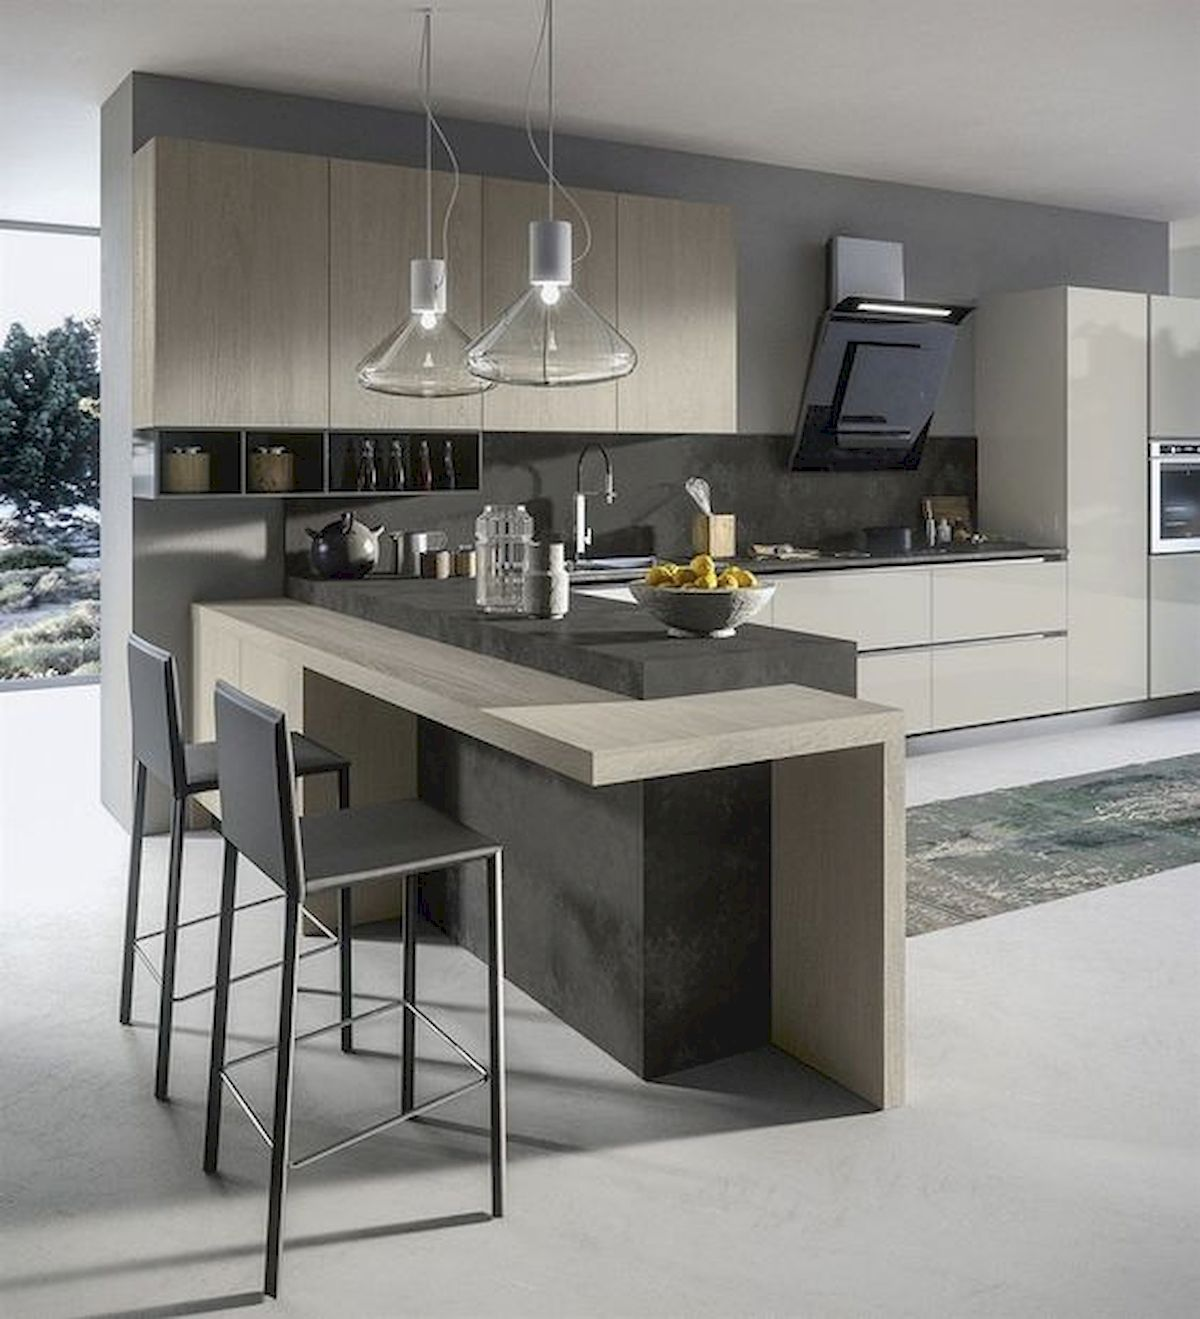 50 Unique Small Kitchen Ideas That You Ve Never Seen